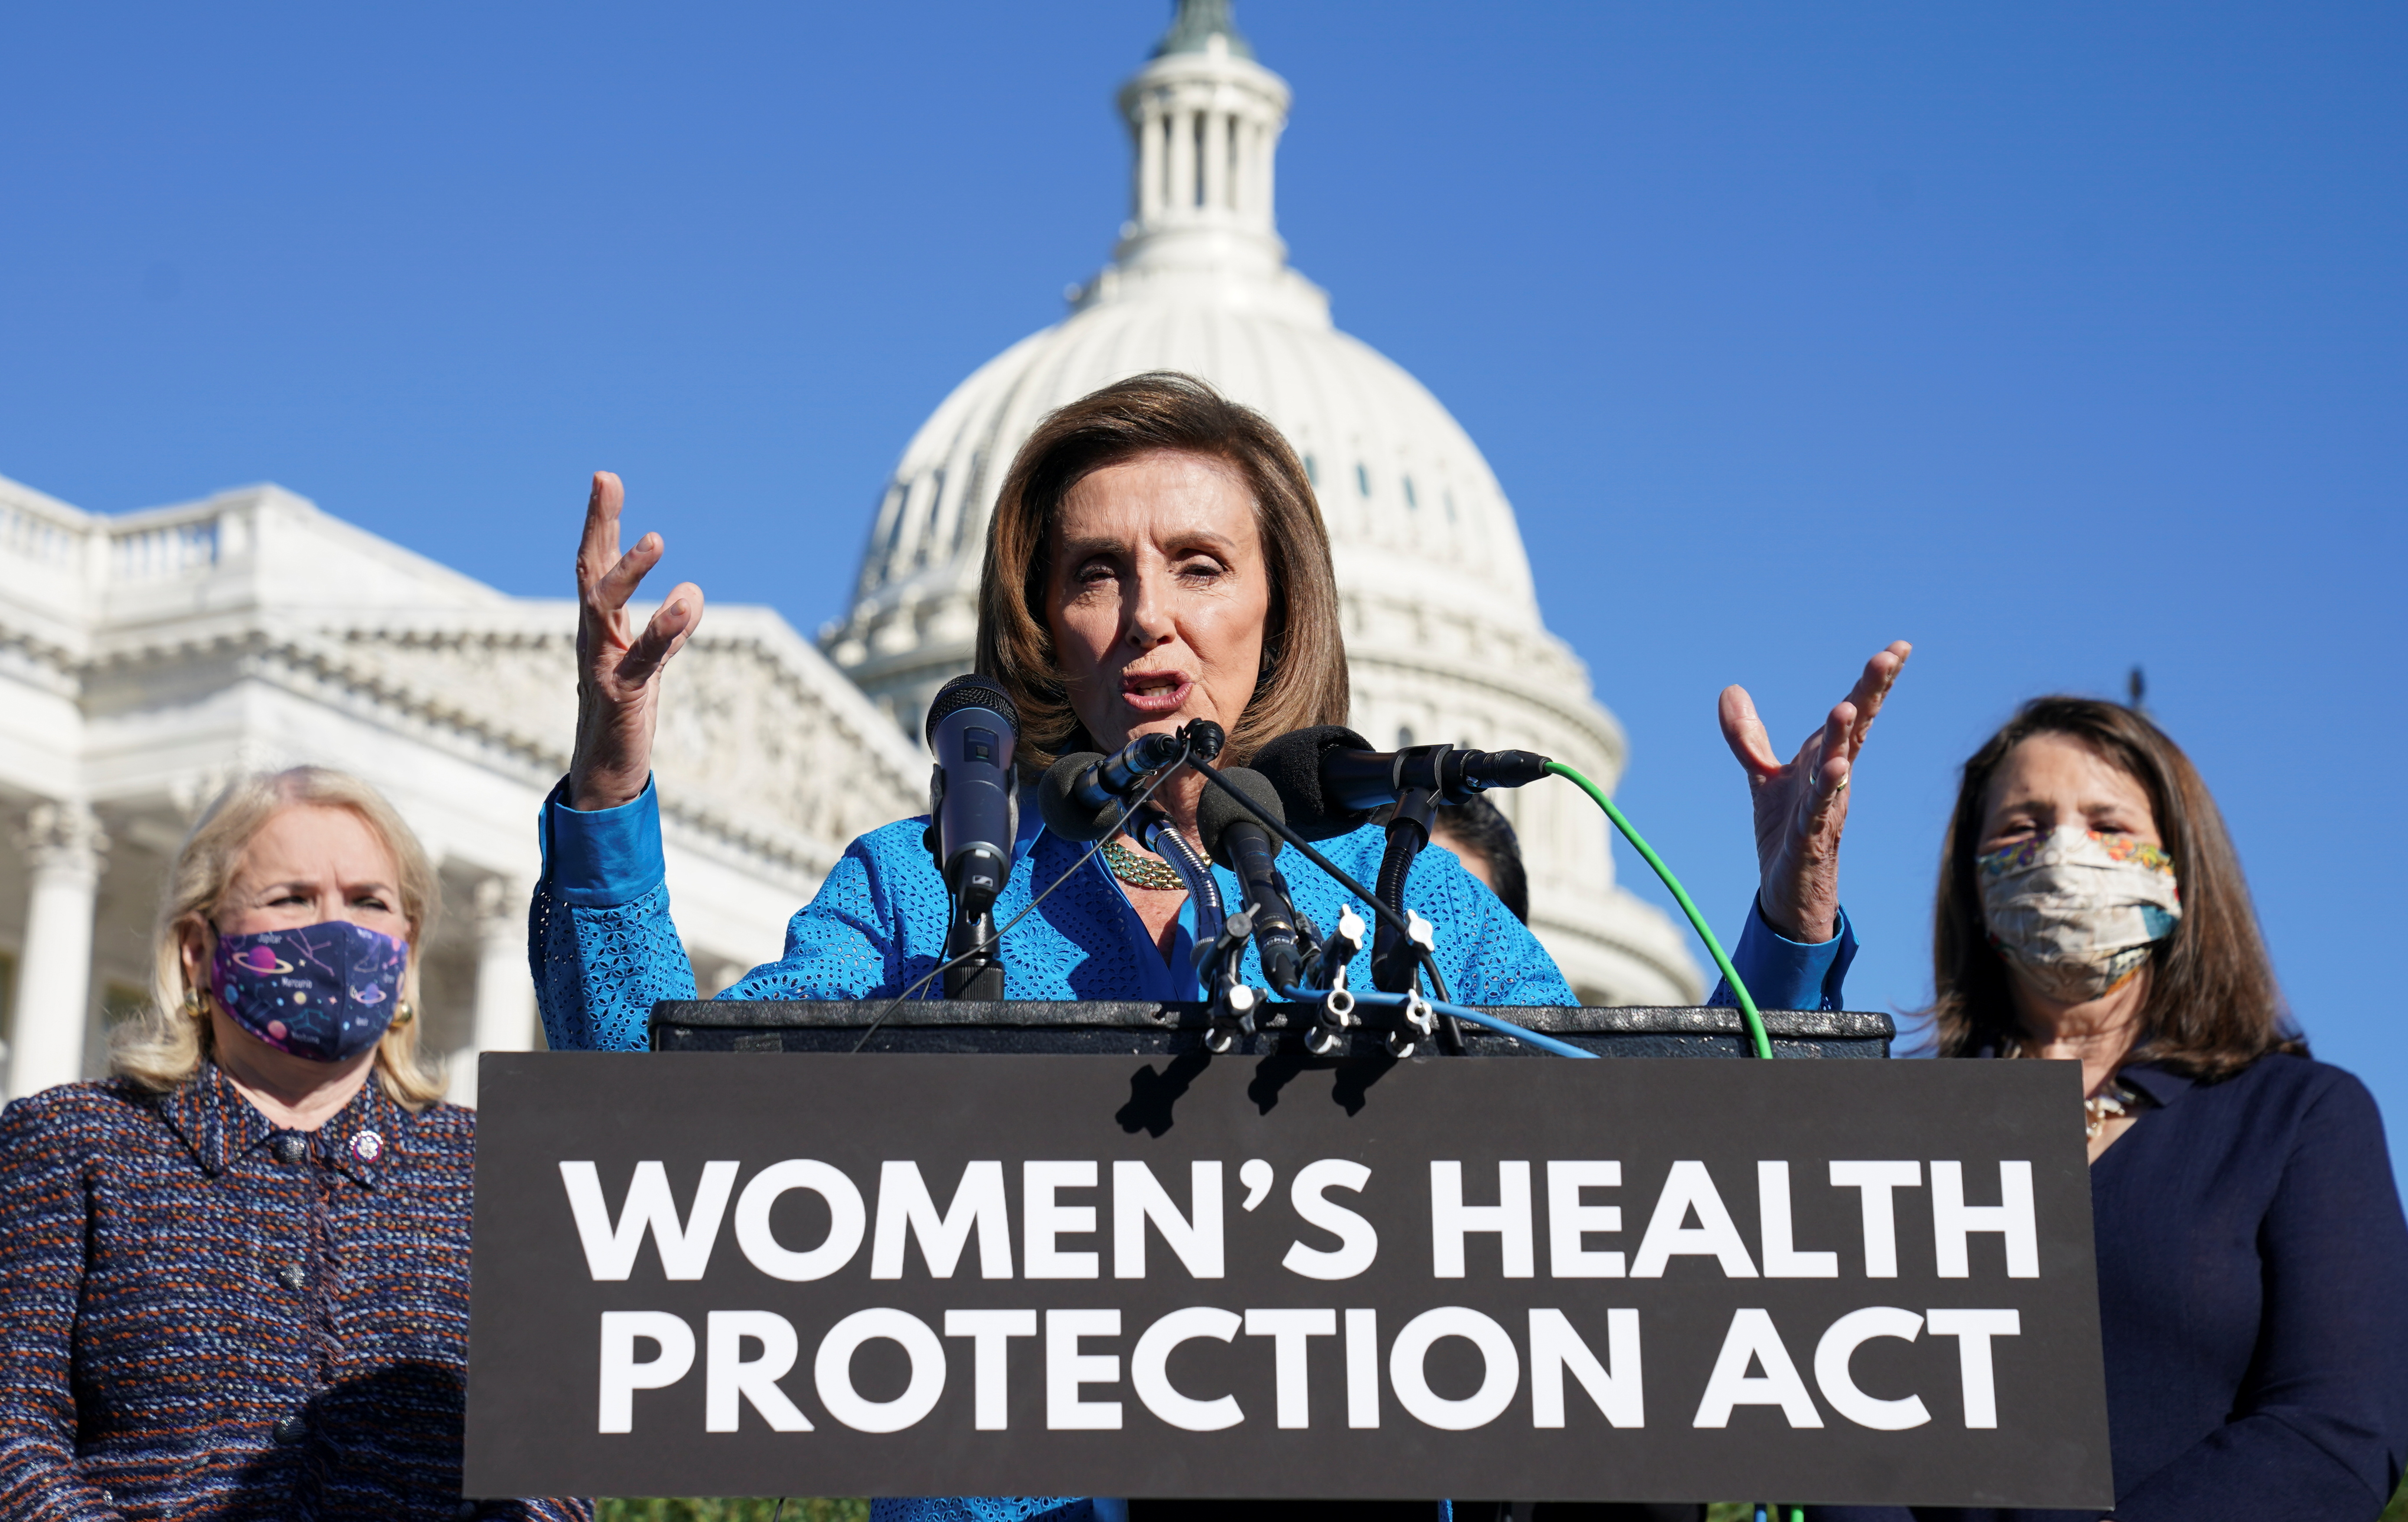 House Speaker Nancy Pelosi (D-CA) speaks during a news conference about the House vote on H.R. 3755, the